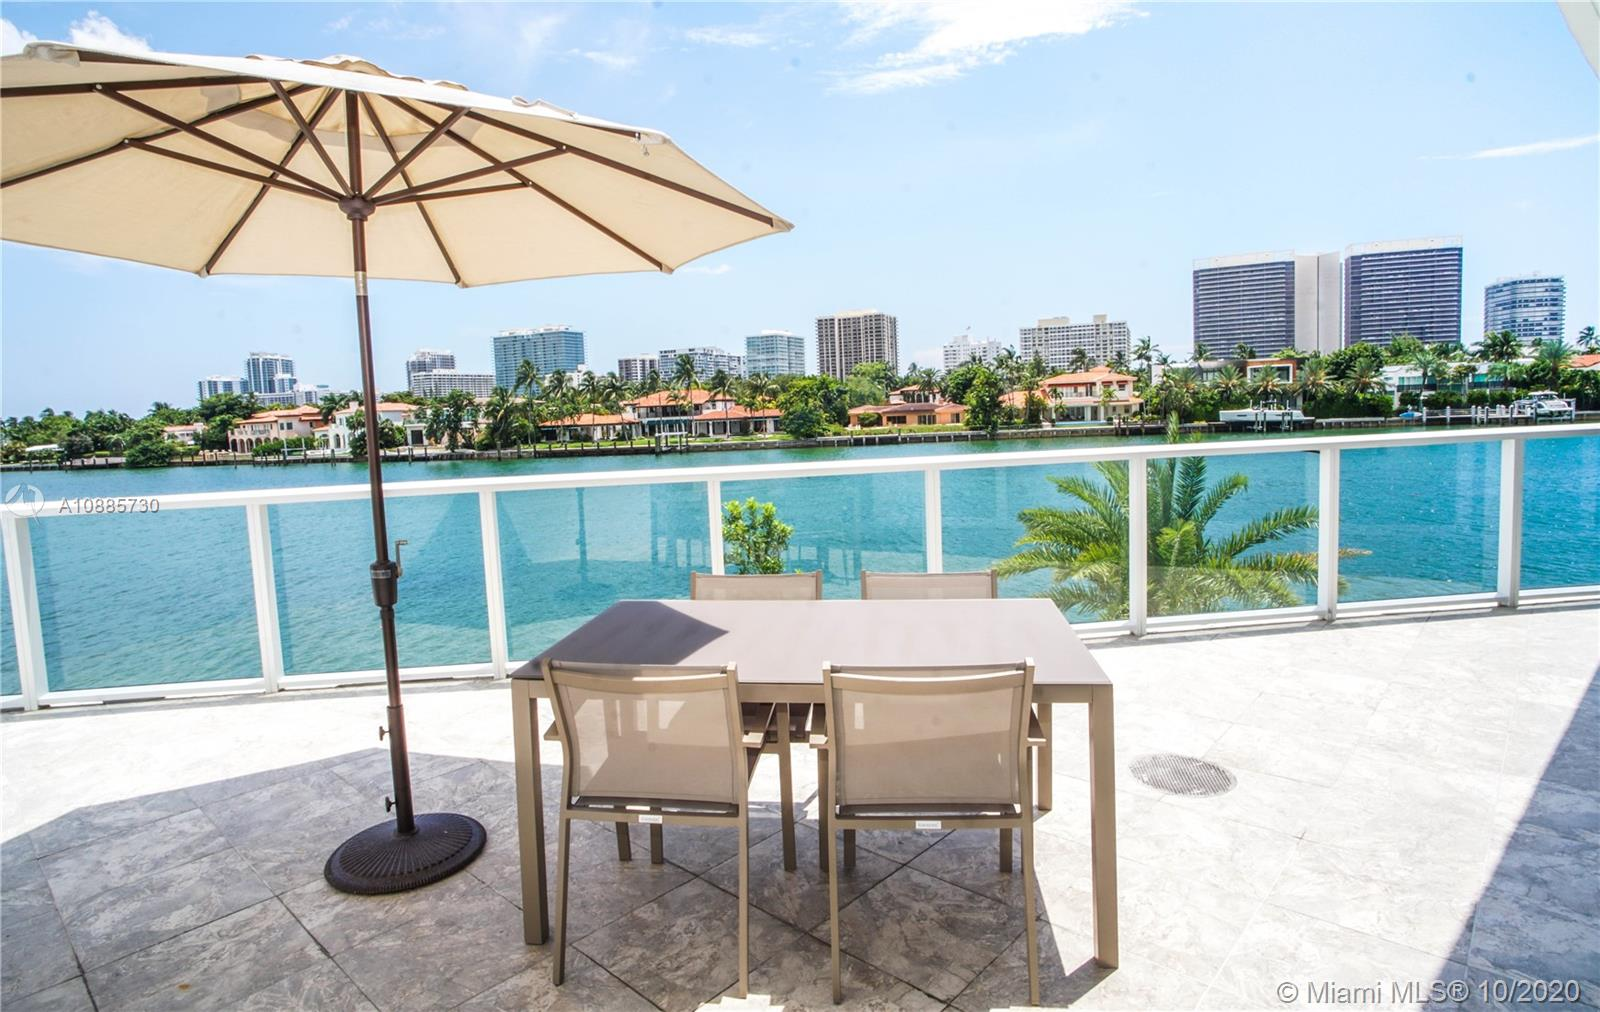 LUXURY INVESTMENT OPPORTUNITY. DIRECT WATER VIEWS from this luxurious 2 bedroom unit at O Residences in Bay Harbor Islands. THIS UNIT HAS THE LARGEST WATERFRONT TERRACE IN THE BUILDING (450 SQFT). Beautiful Italian porcelain floors throughout with marble floors in the bathrooms, updated light fixtures, lots of closet space with built in shelving, floor to ceiling windows, washer and dryer in unit, Viking appliances, quartz counter tops, etc. O Residences offers lots of upscale amenities including BBQ, 2 pools, hot tub, paddle board storage, community dock, gym and relaxing sauna. The HOA includes cable TV and internet. 2 assigned garage and one assigned storage unit. RENTED THROUGH 10/14/22 FOR $3600/MONTH